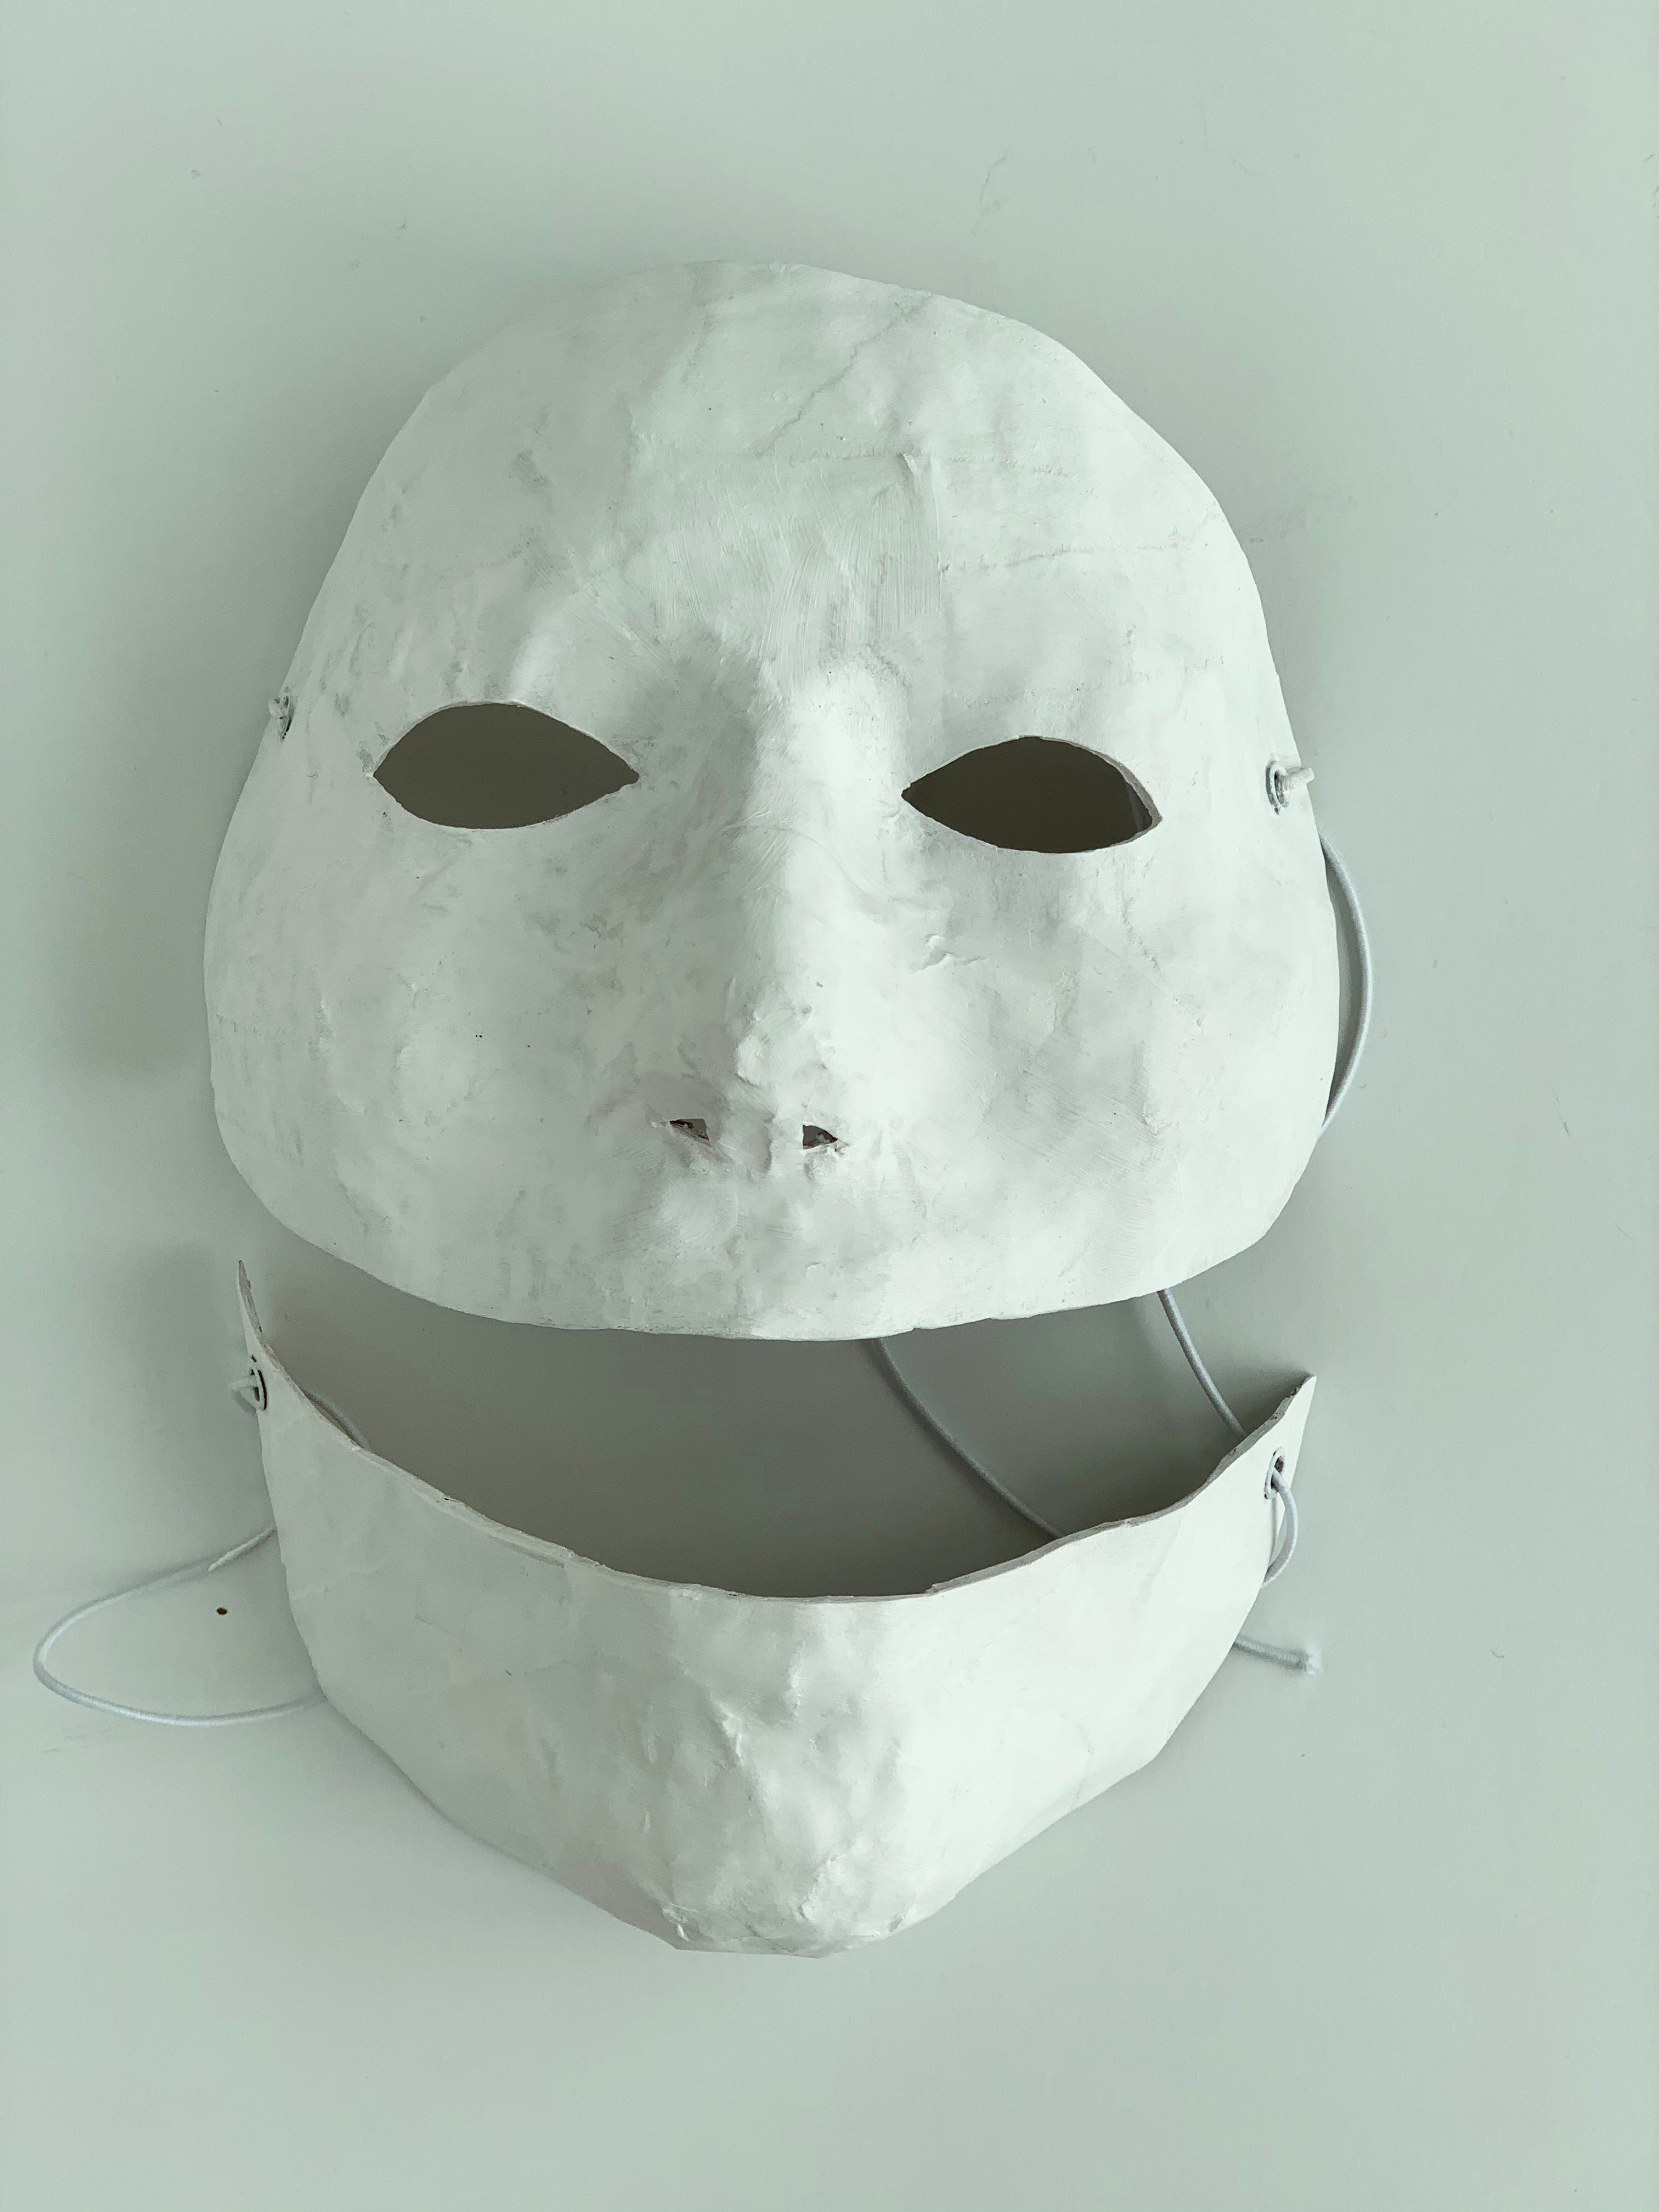 Self-Portrait (White Face #3)